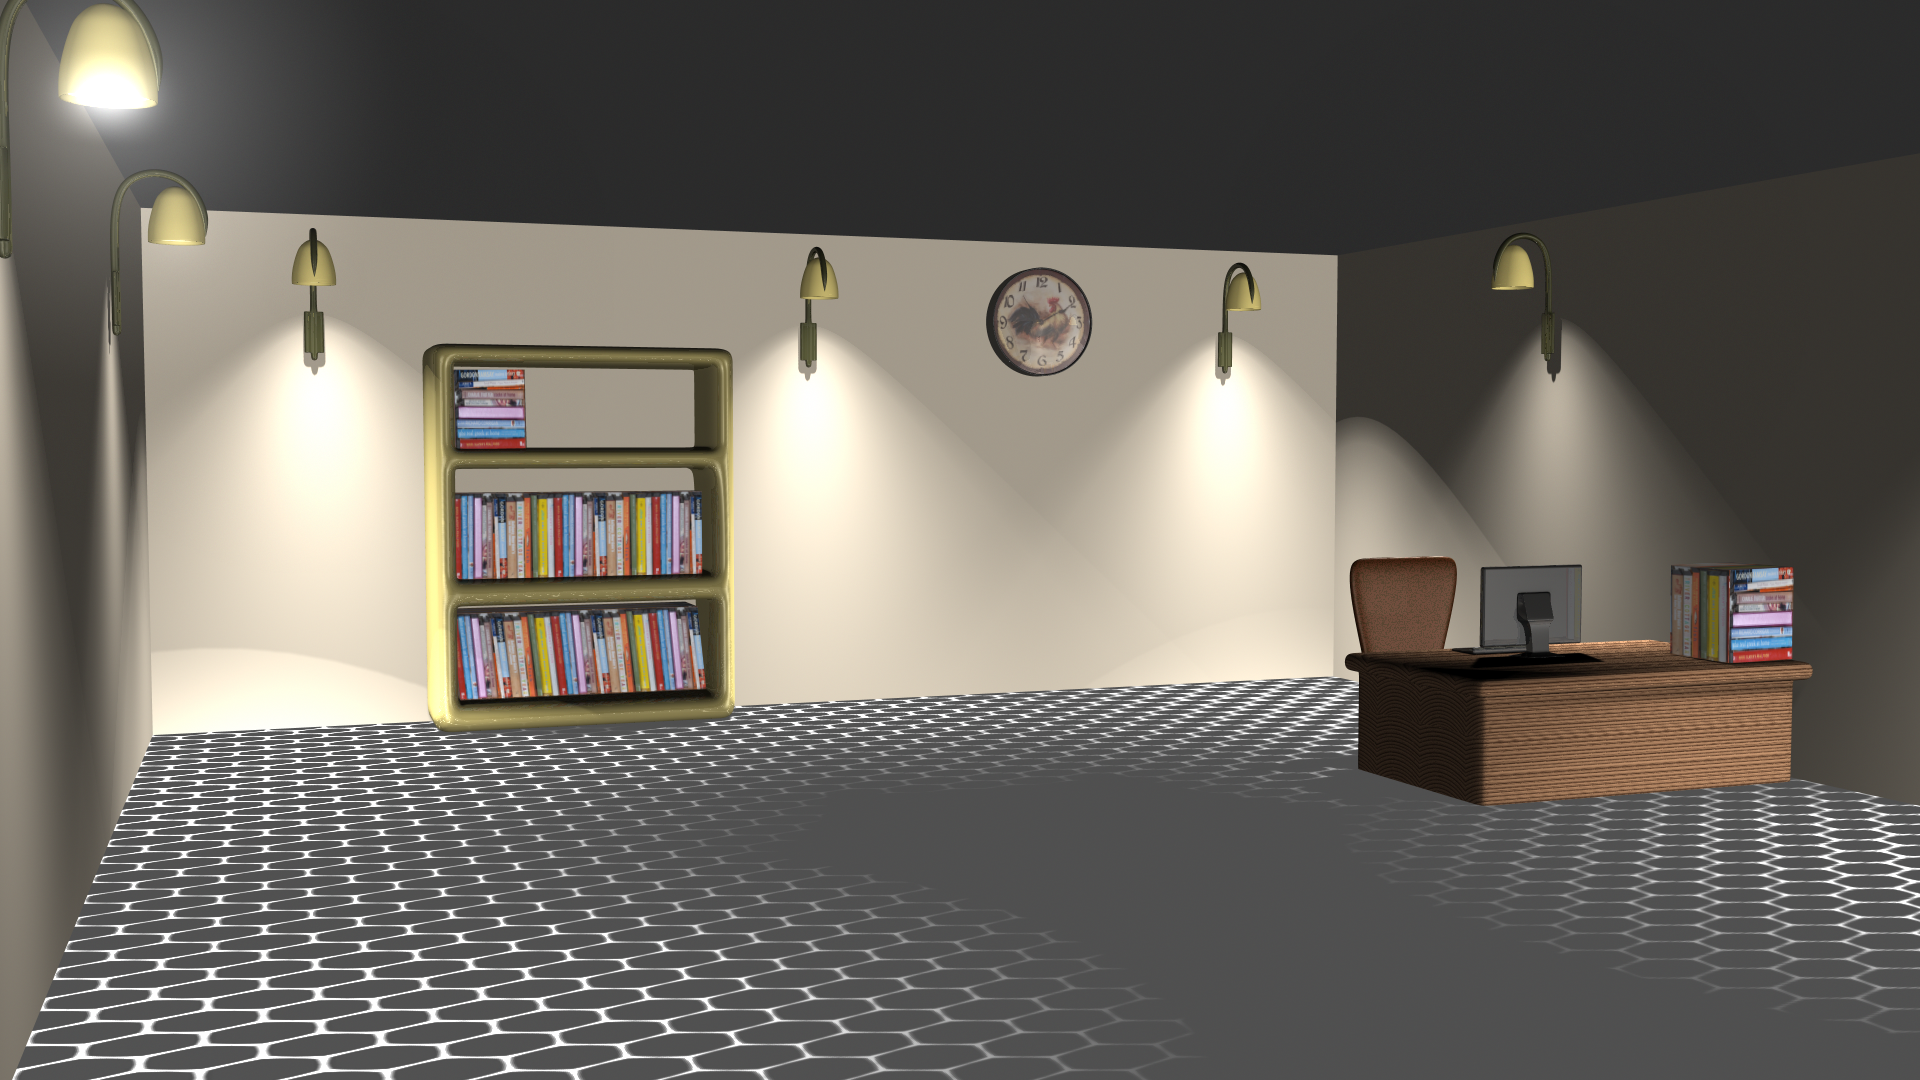 PNG Office Room Transparent Office Room.PNG Images. | PlusPNG